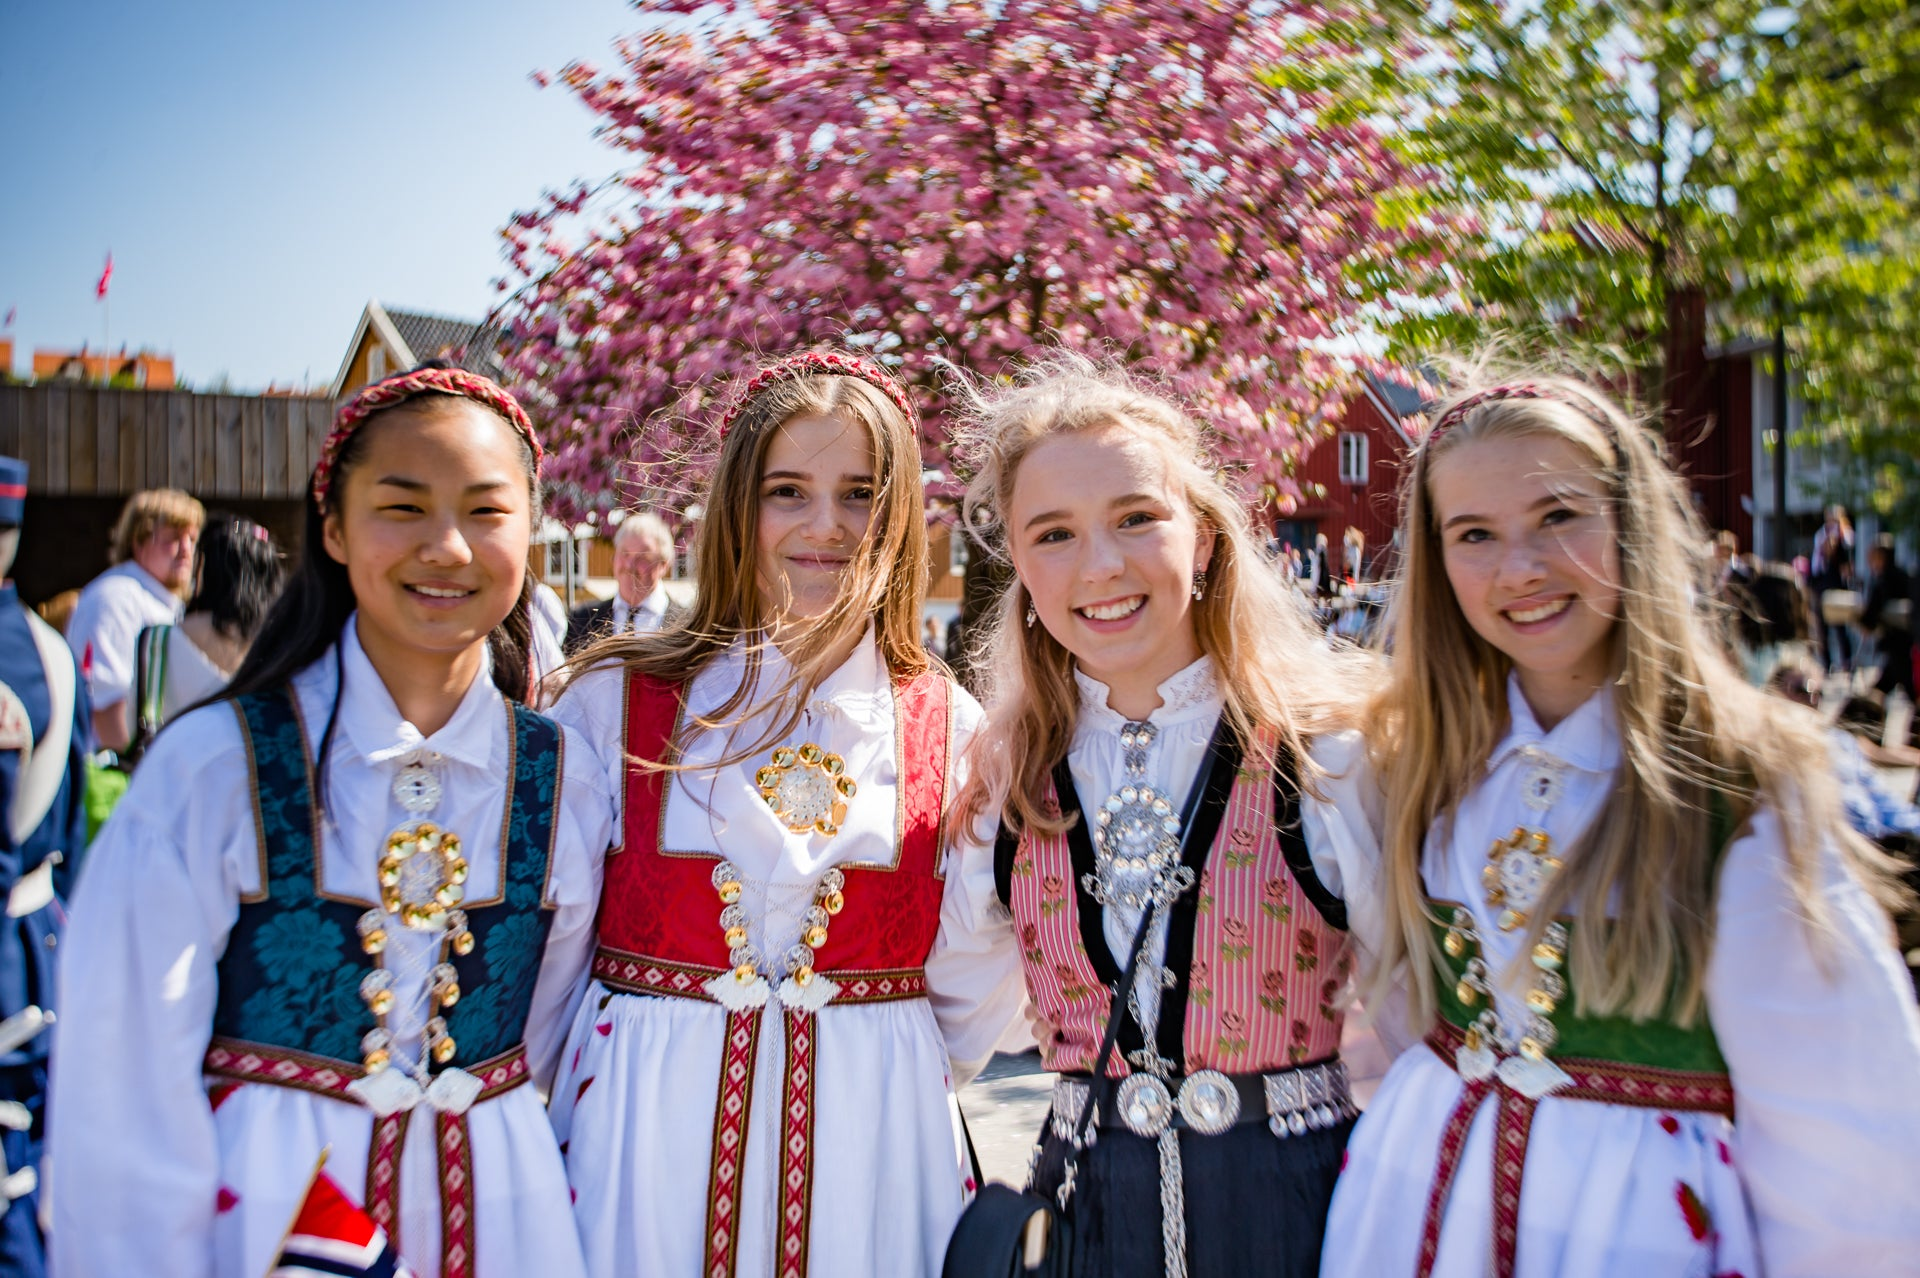 Norwegian girls in traditional clothes spring celebration Traveling Burnside Project Birgit Fostervold